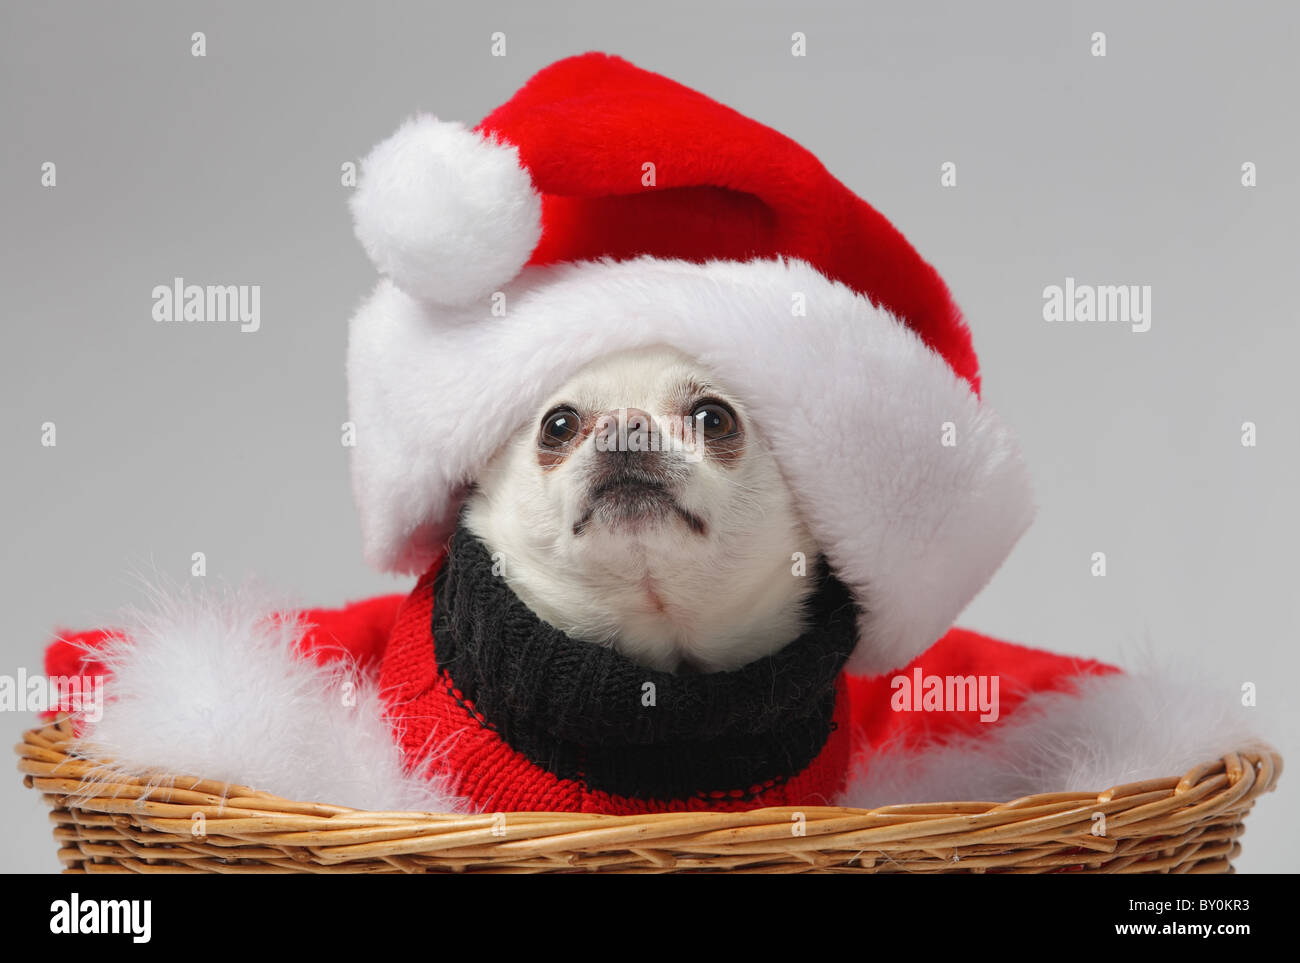 89cb17fa238 funny white chihuahua dog wearing santa hat - Stock Image